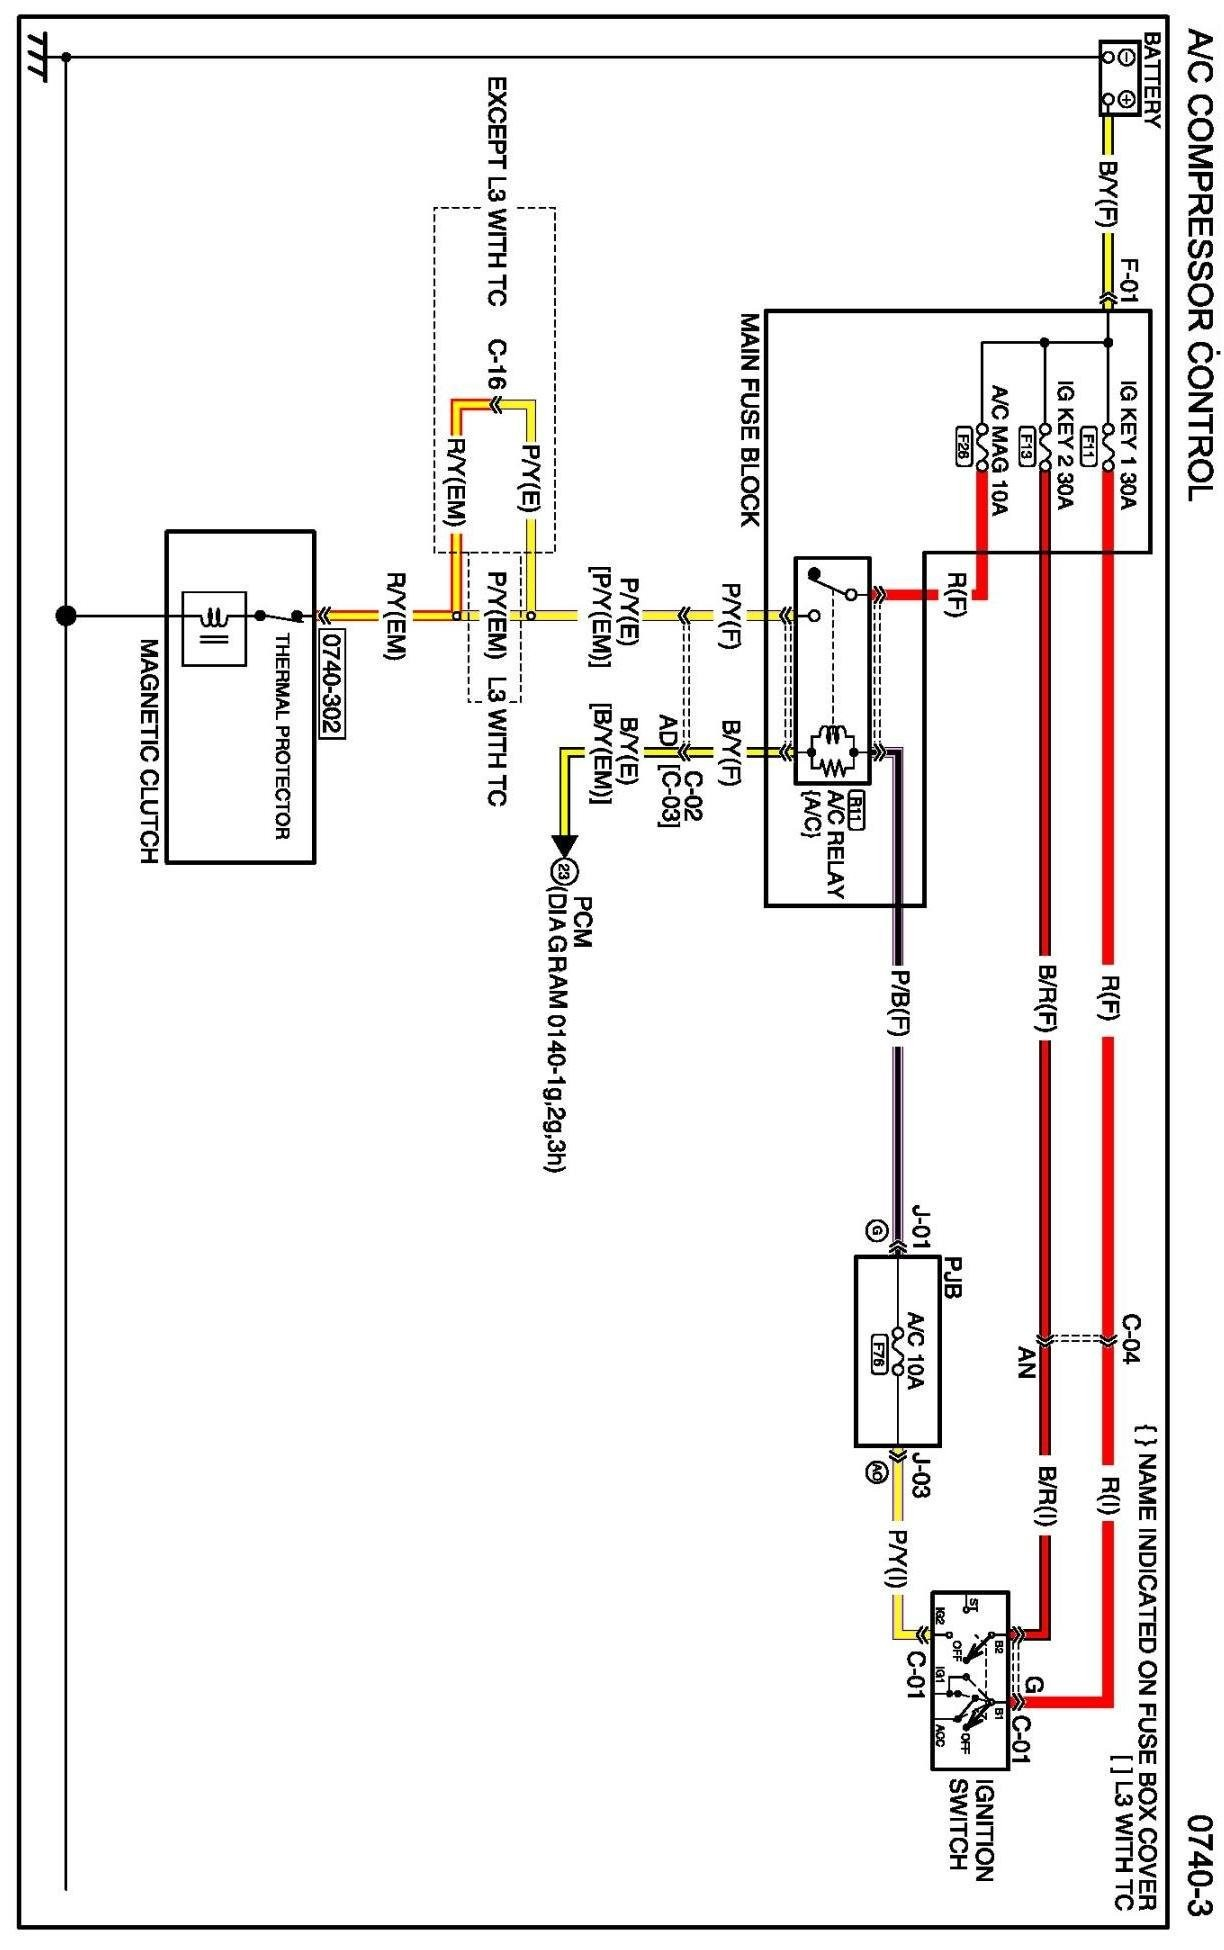 Ac System Diagram Car Outside Unit Home Air Conditioner Wiring Parts Of